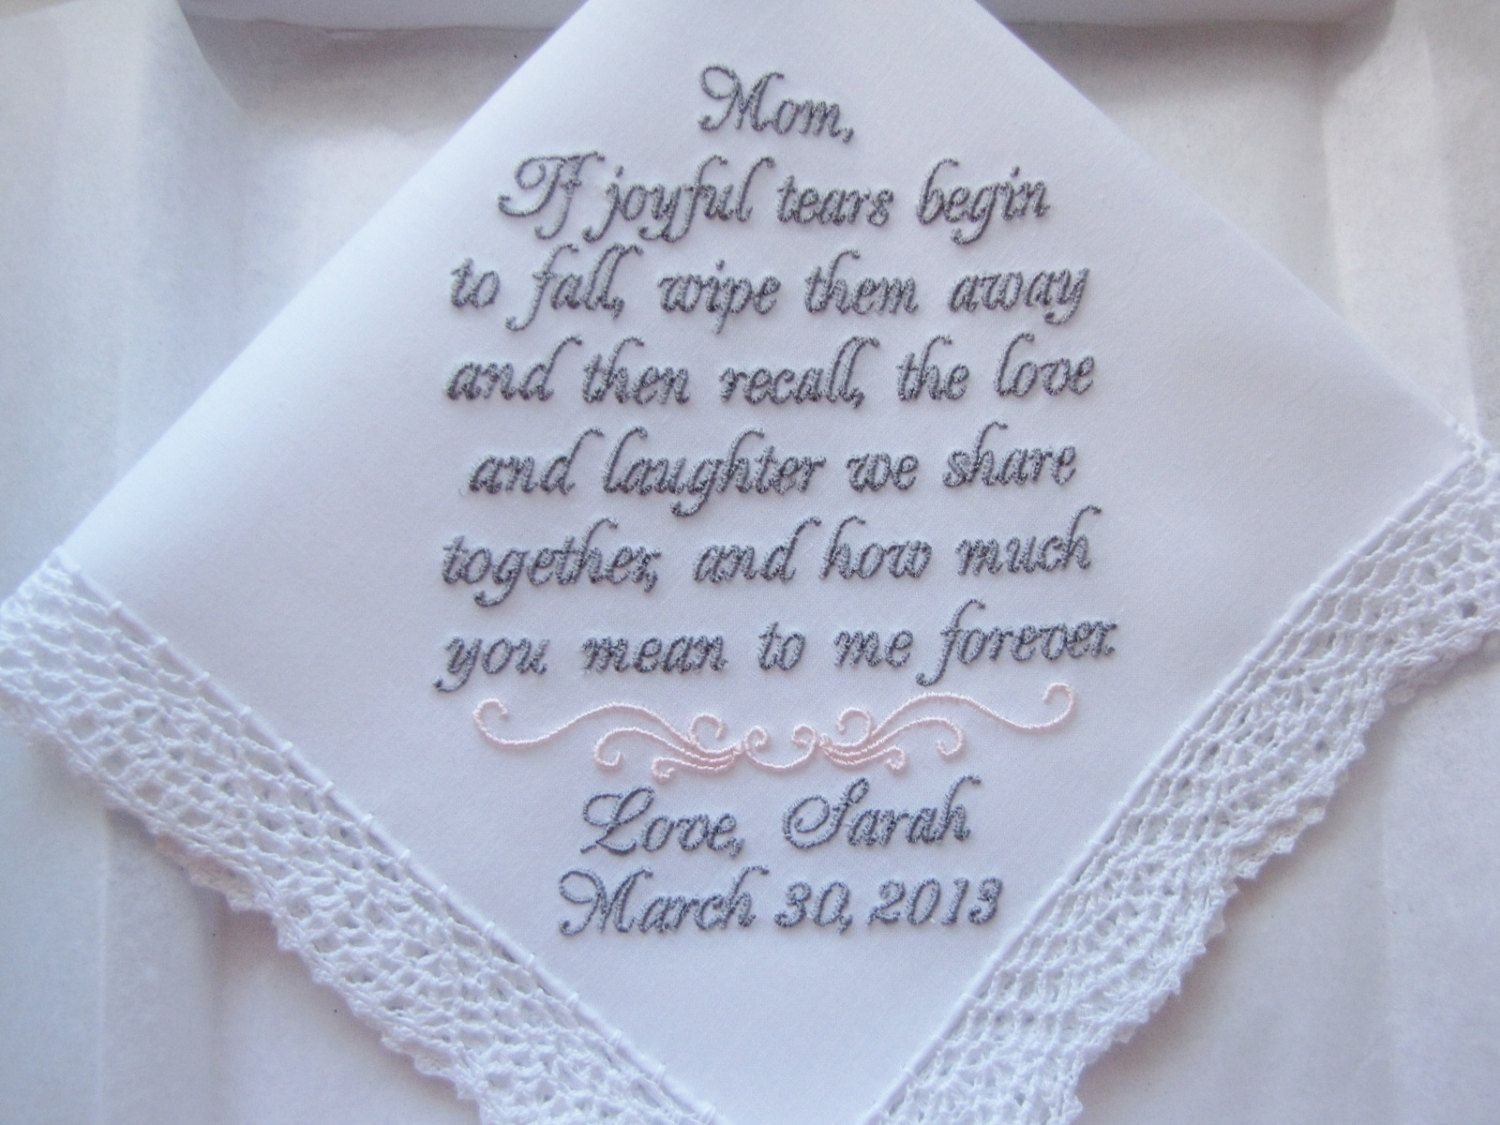 10 Stylish Thank You Gift Ideas For Parents 7 great thank you gift ideas for your parents on your wedding day 2 2020